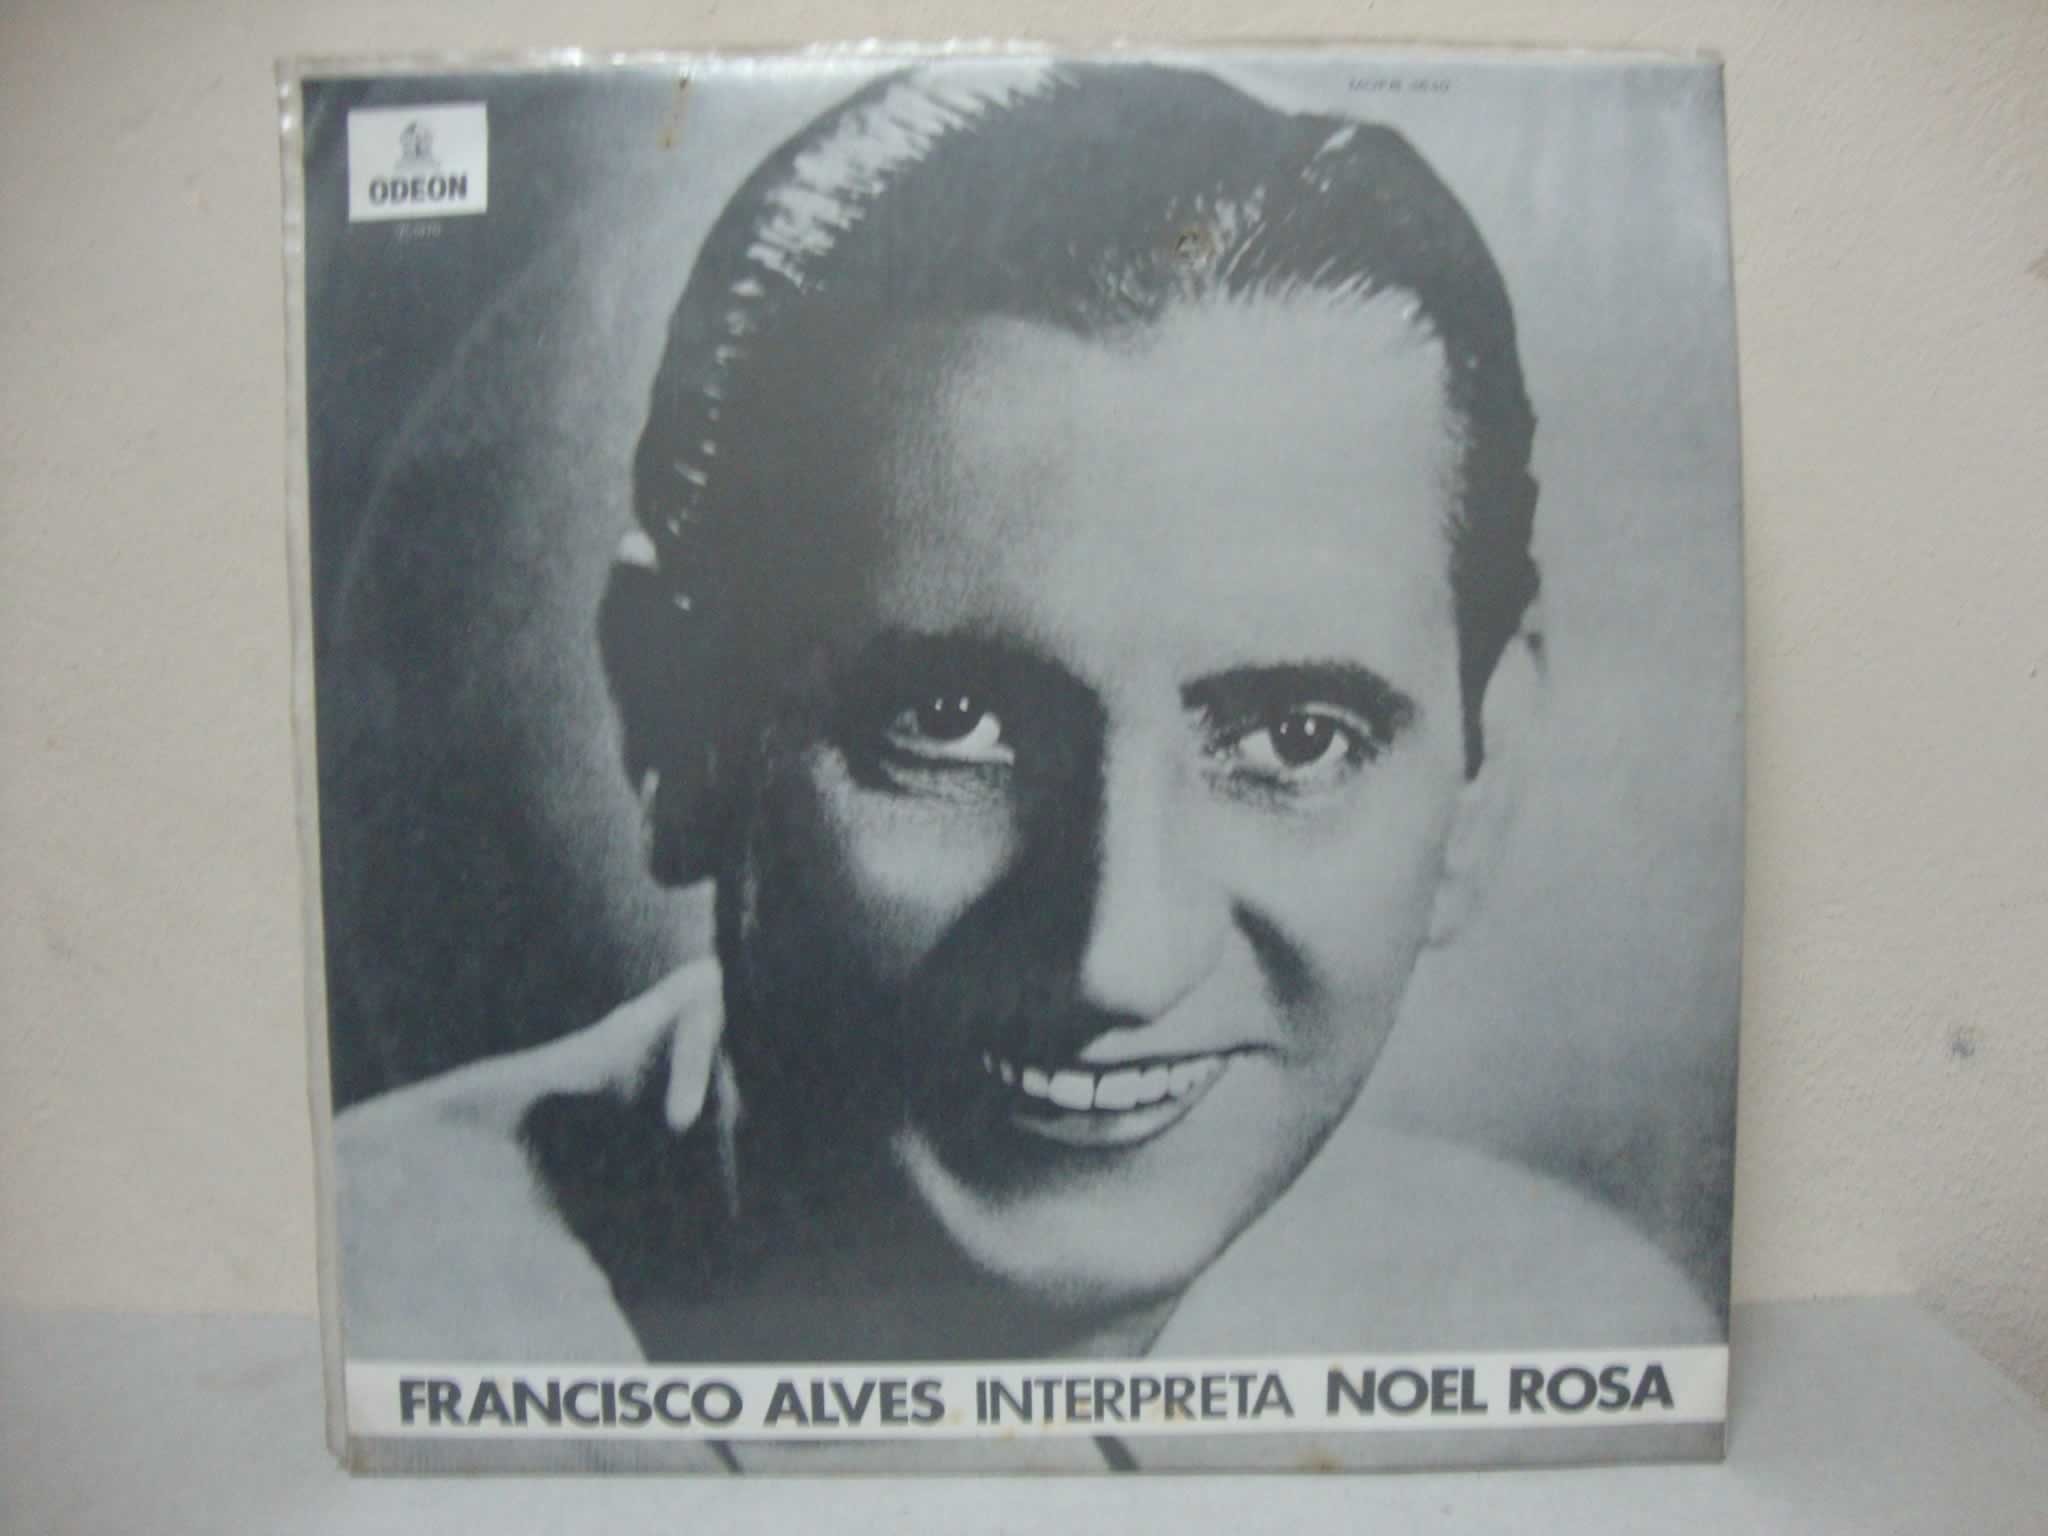 VINIL FRANCISCO ALVES INTERPRETA NOEL ROSA